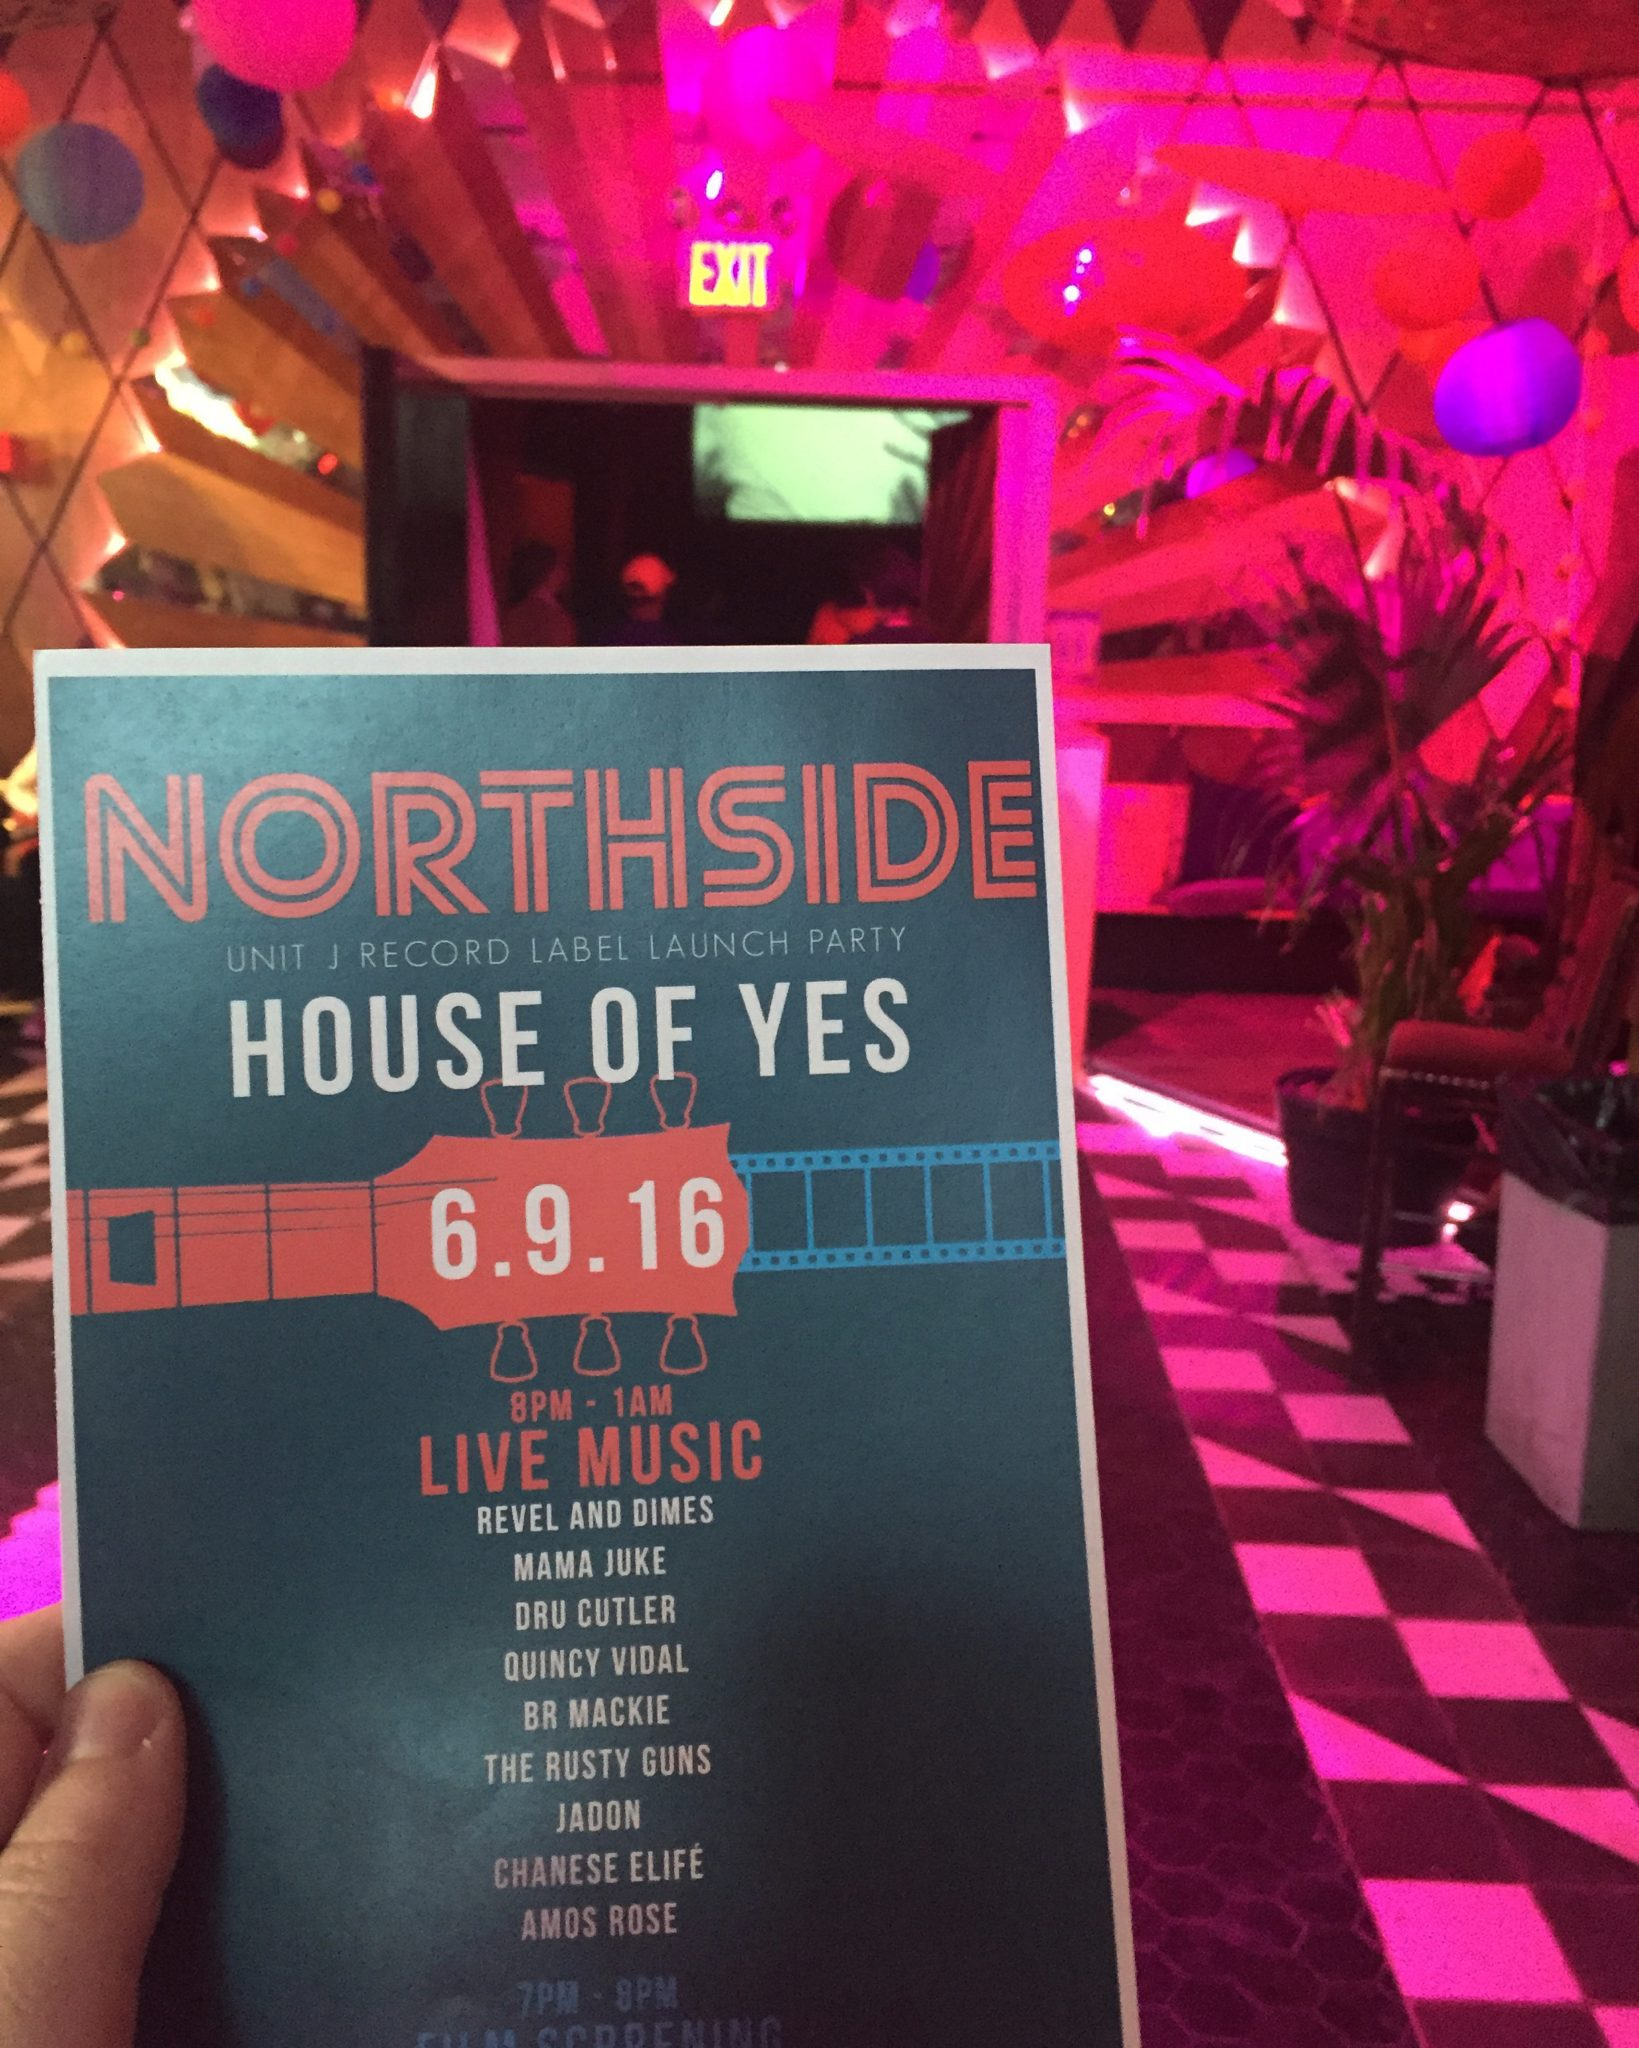 Unit J Launch at House of Yes